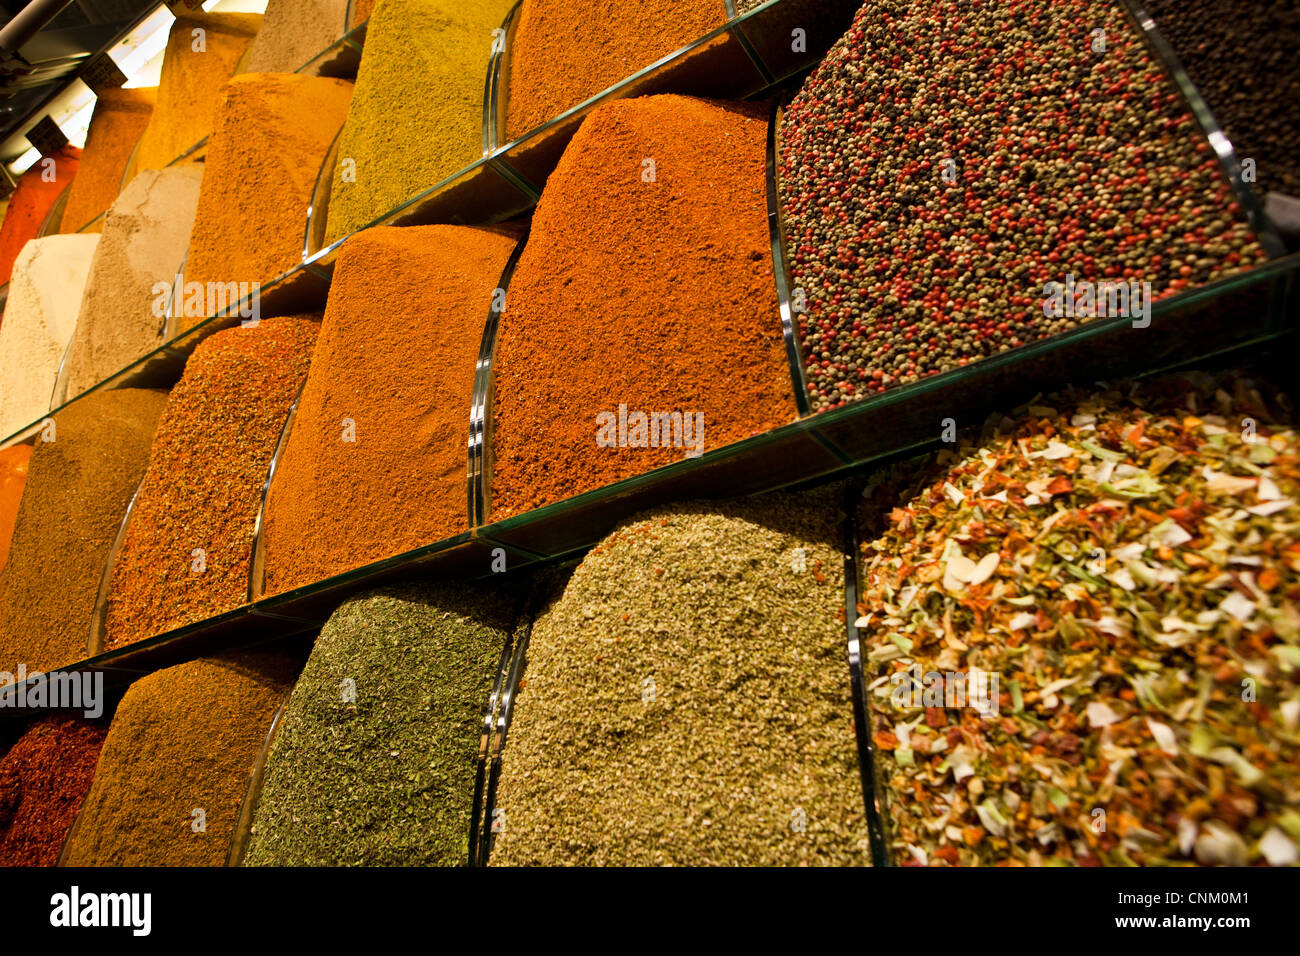 spices at the Egyptian Bazaar, Istanbul, Turkey - Stock Image